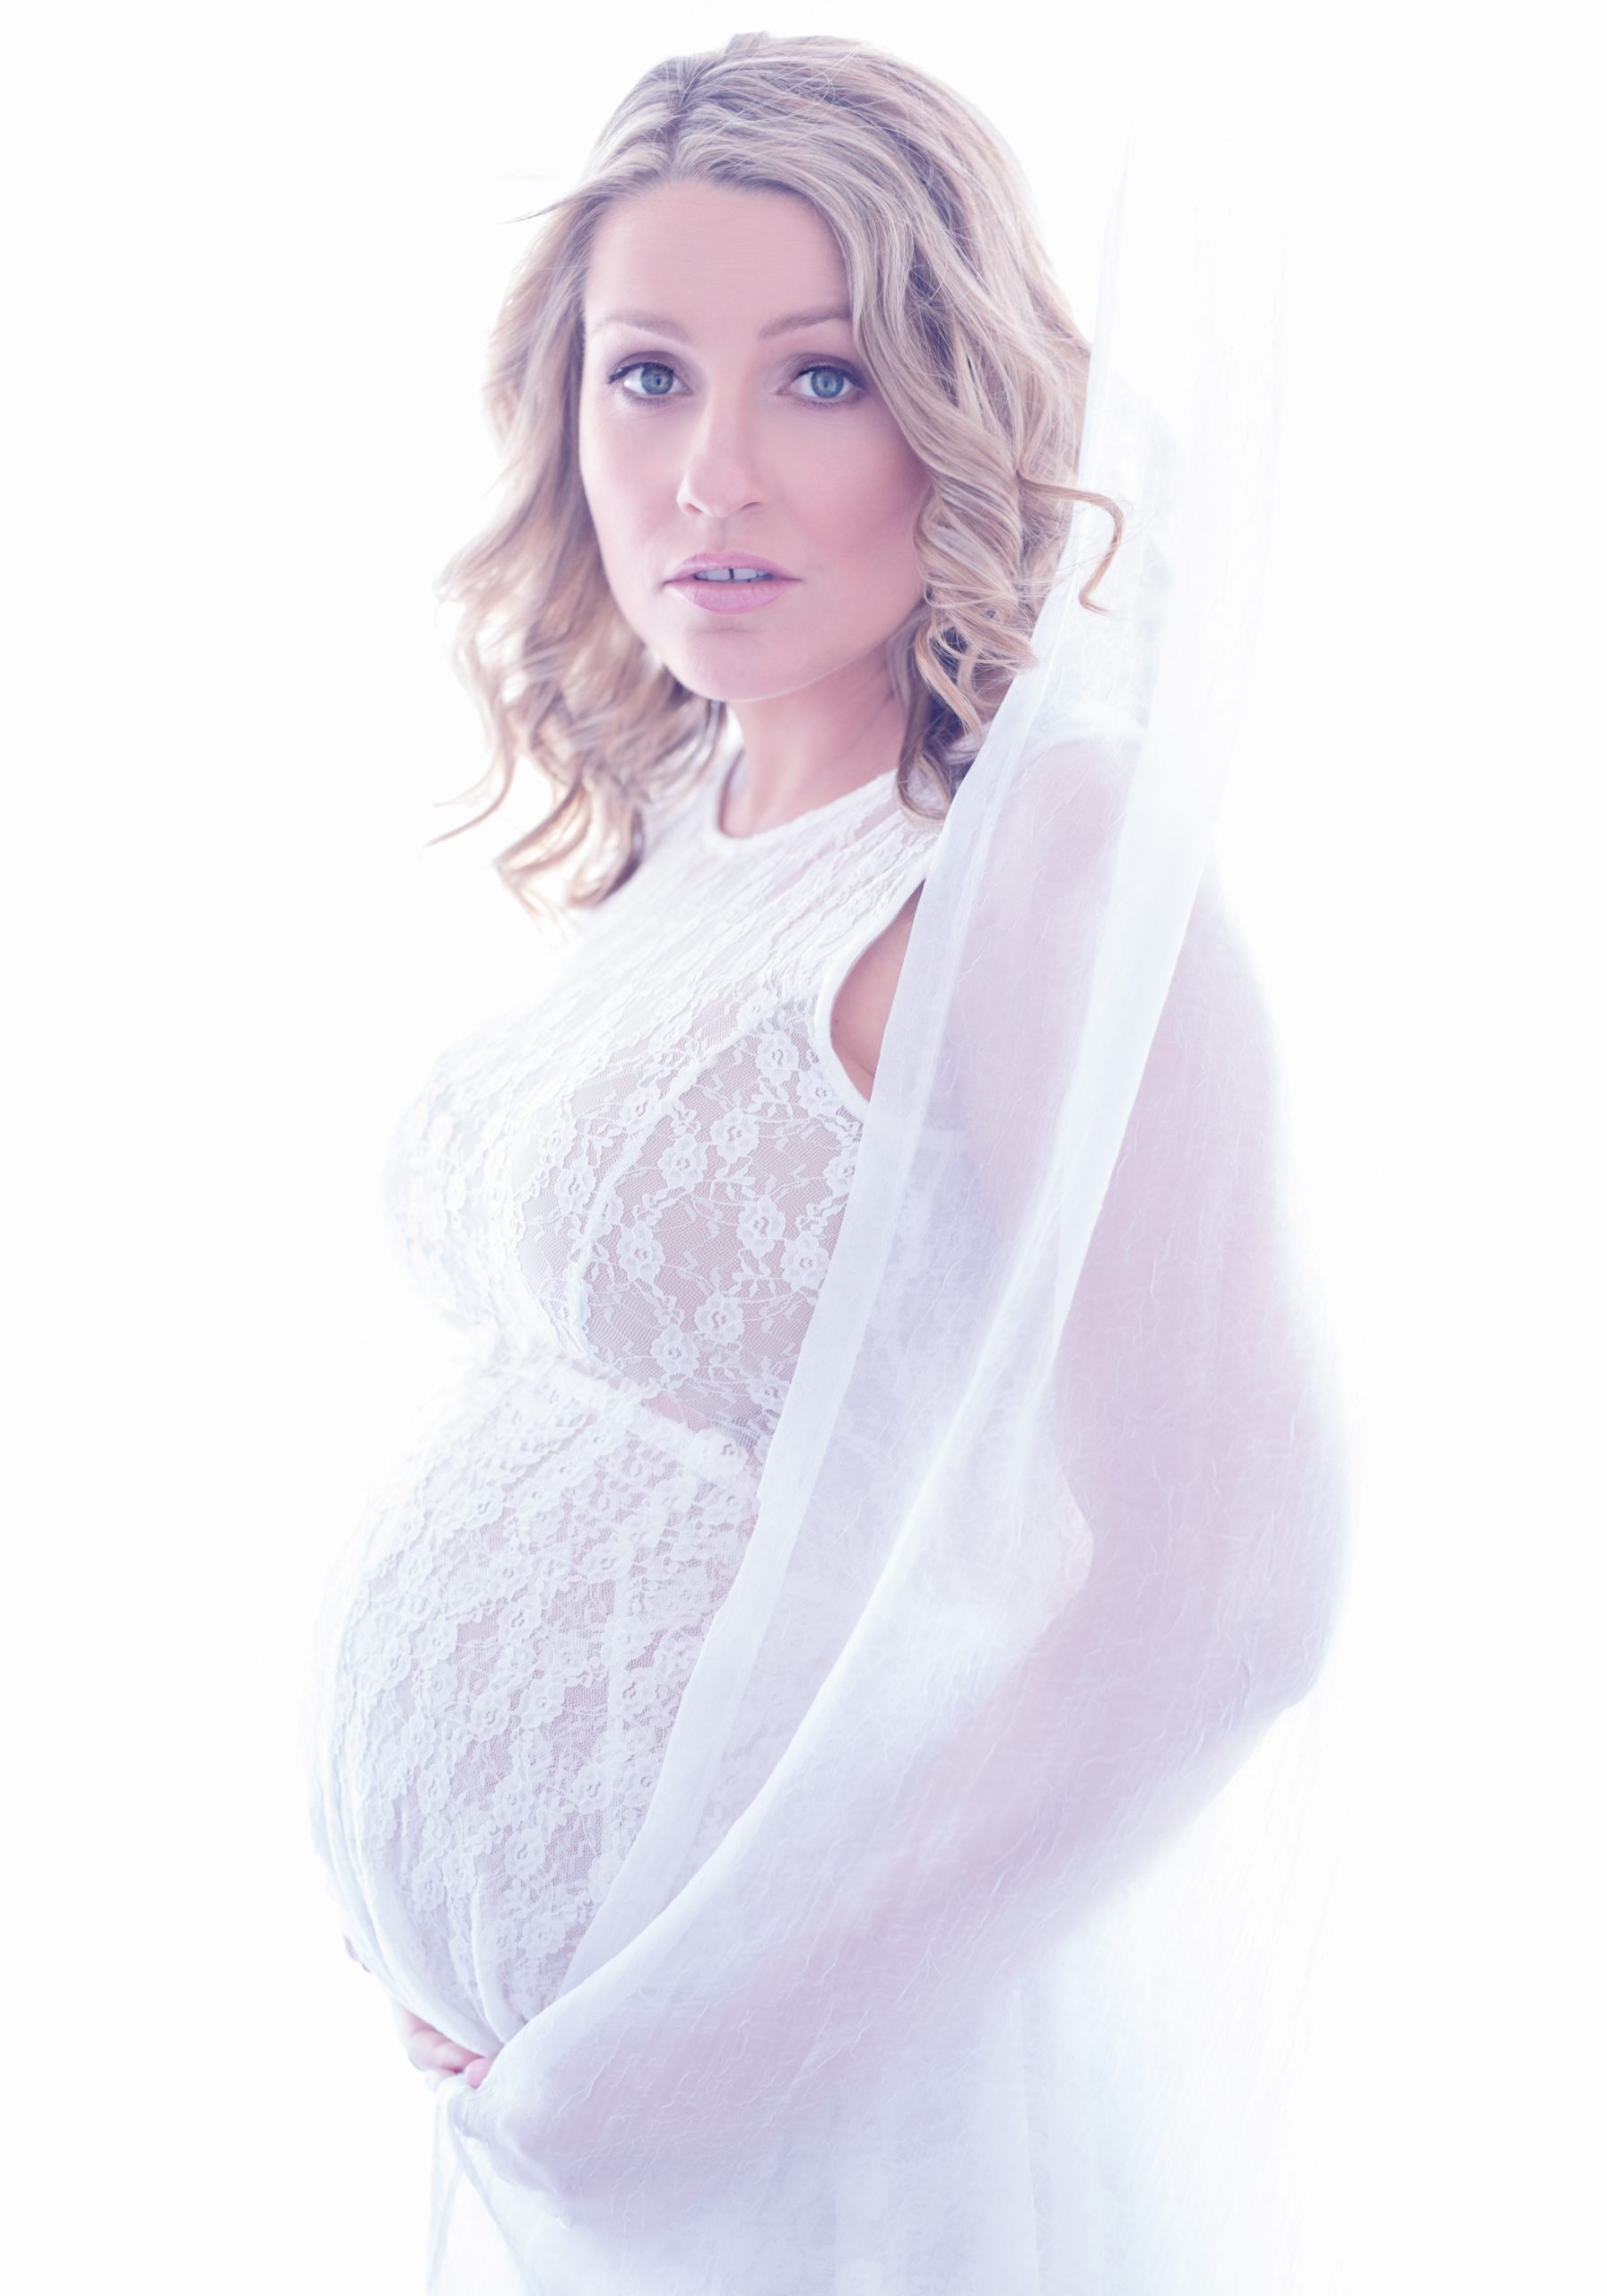 High Key beautiful blonde pregnant woman behind a sheer curtain in a lace dress!